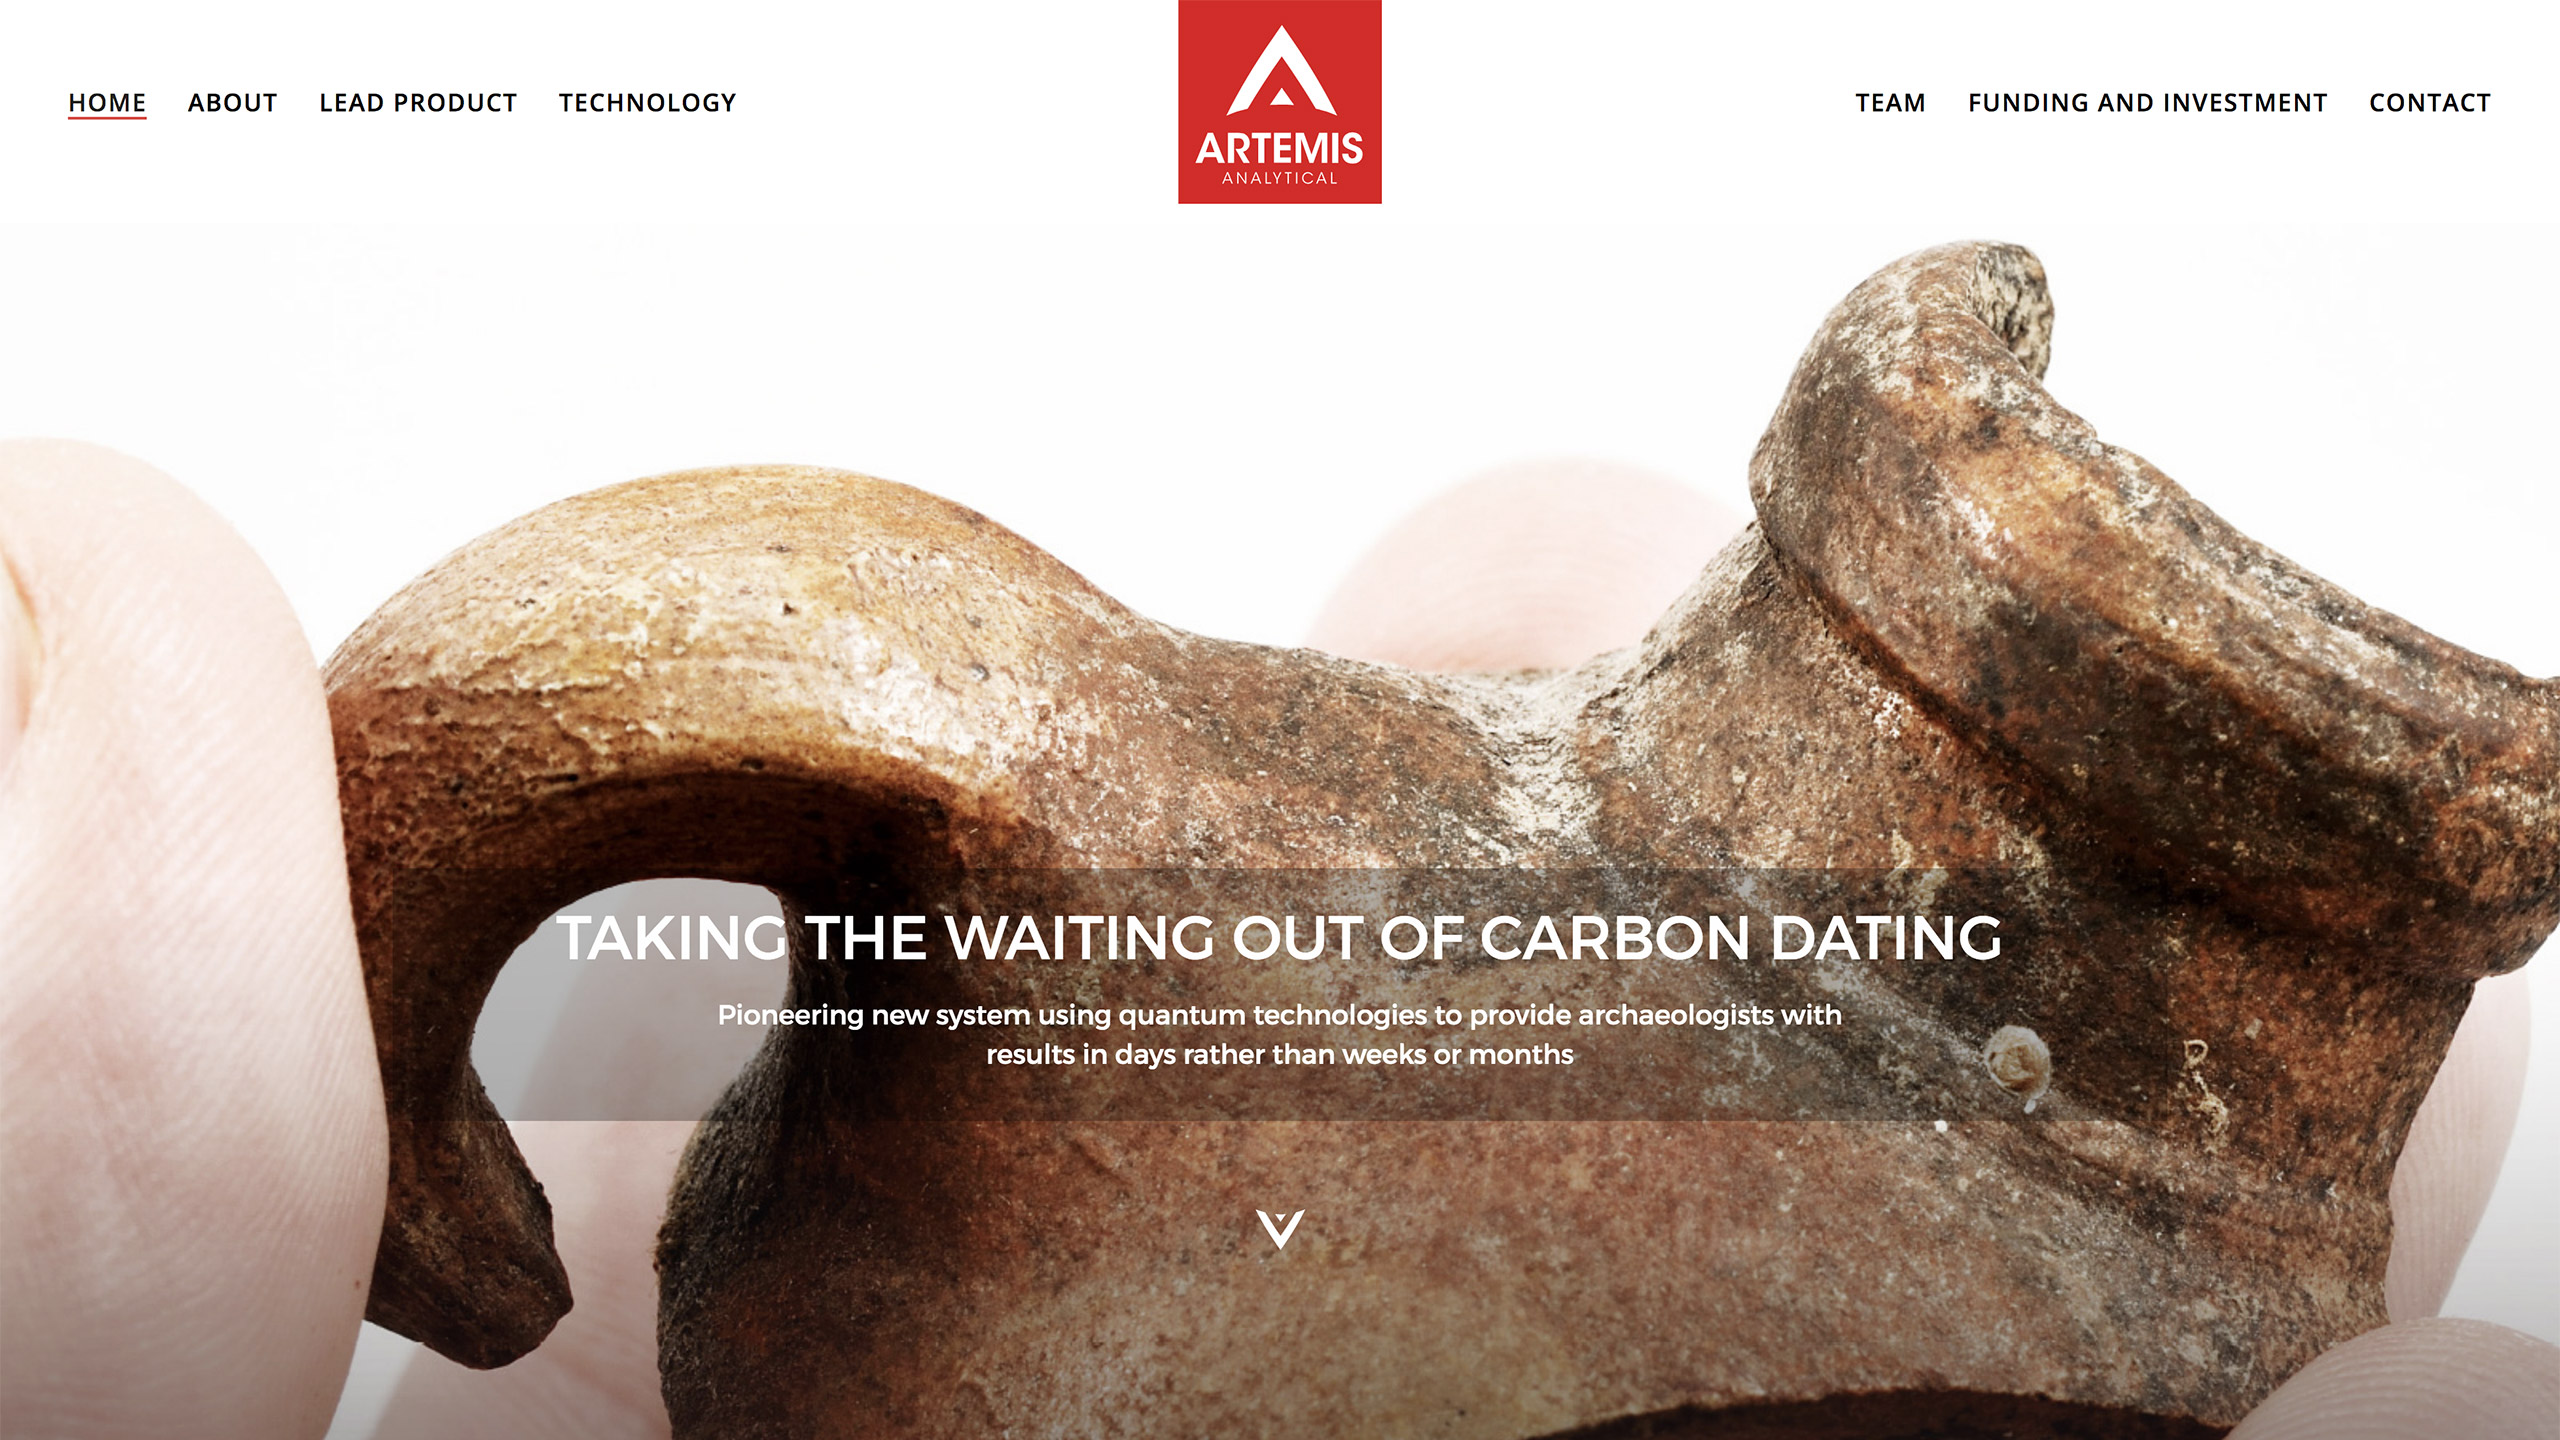 New carbon dating technology